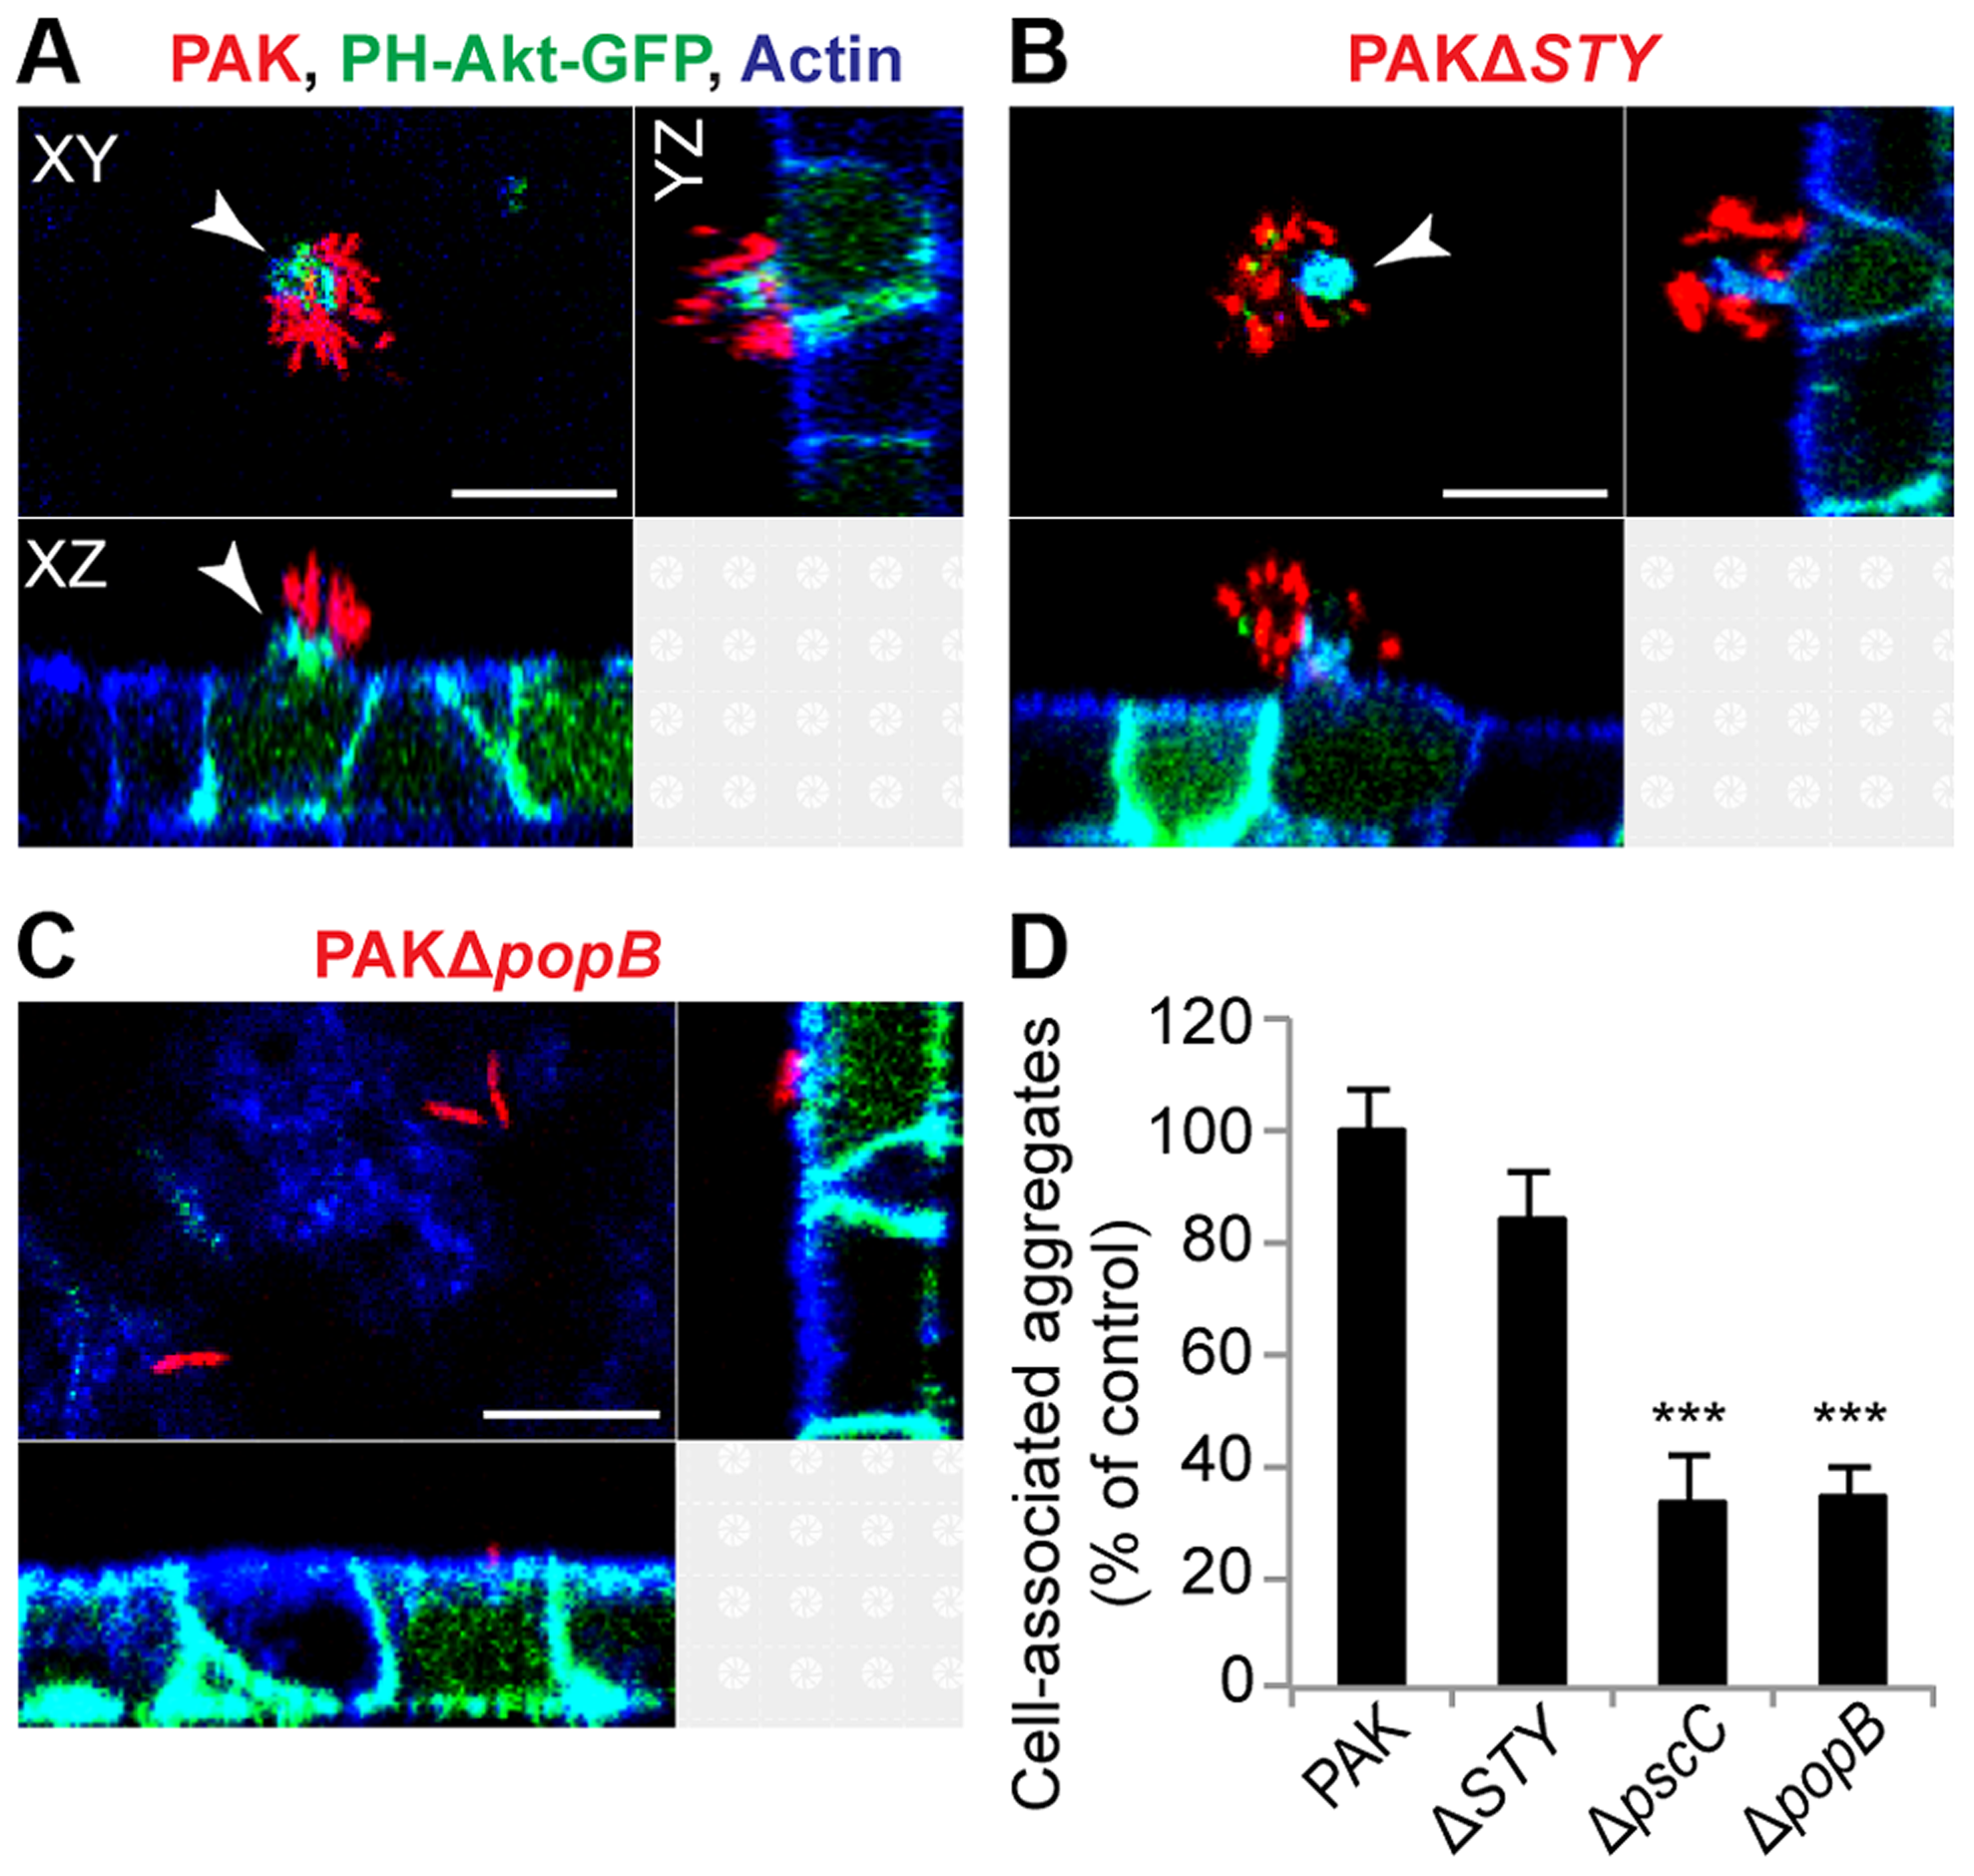 Cell-associated aggregation requires the T3SS translocon but does not require T3SS effectors.